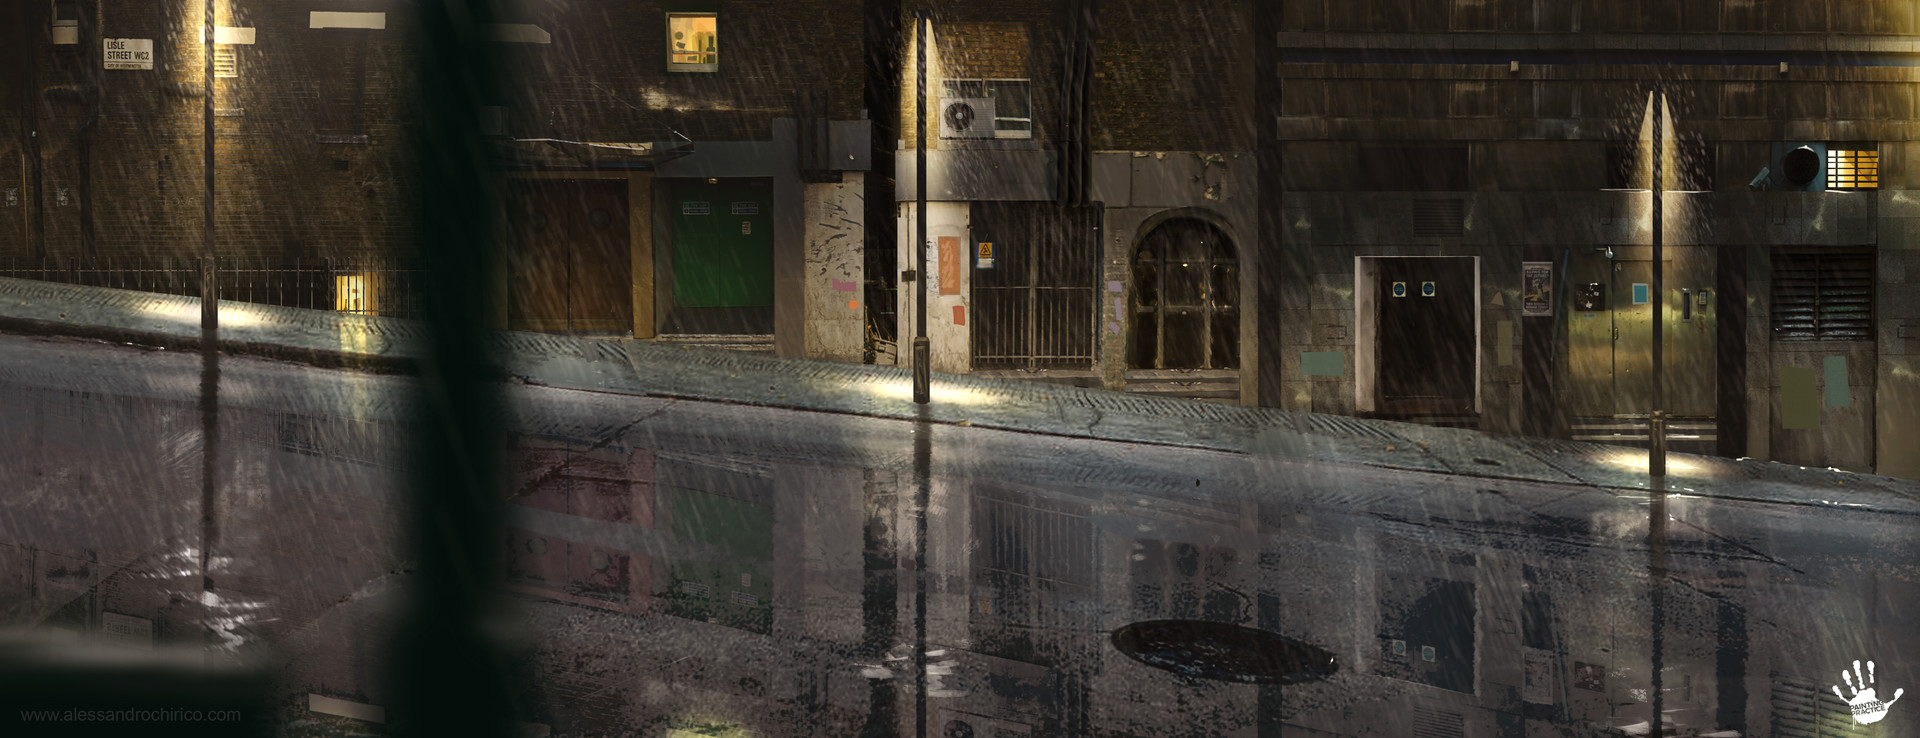 Concept for one of the matte painting of the sequence where Jack rides his bike under the rain.